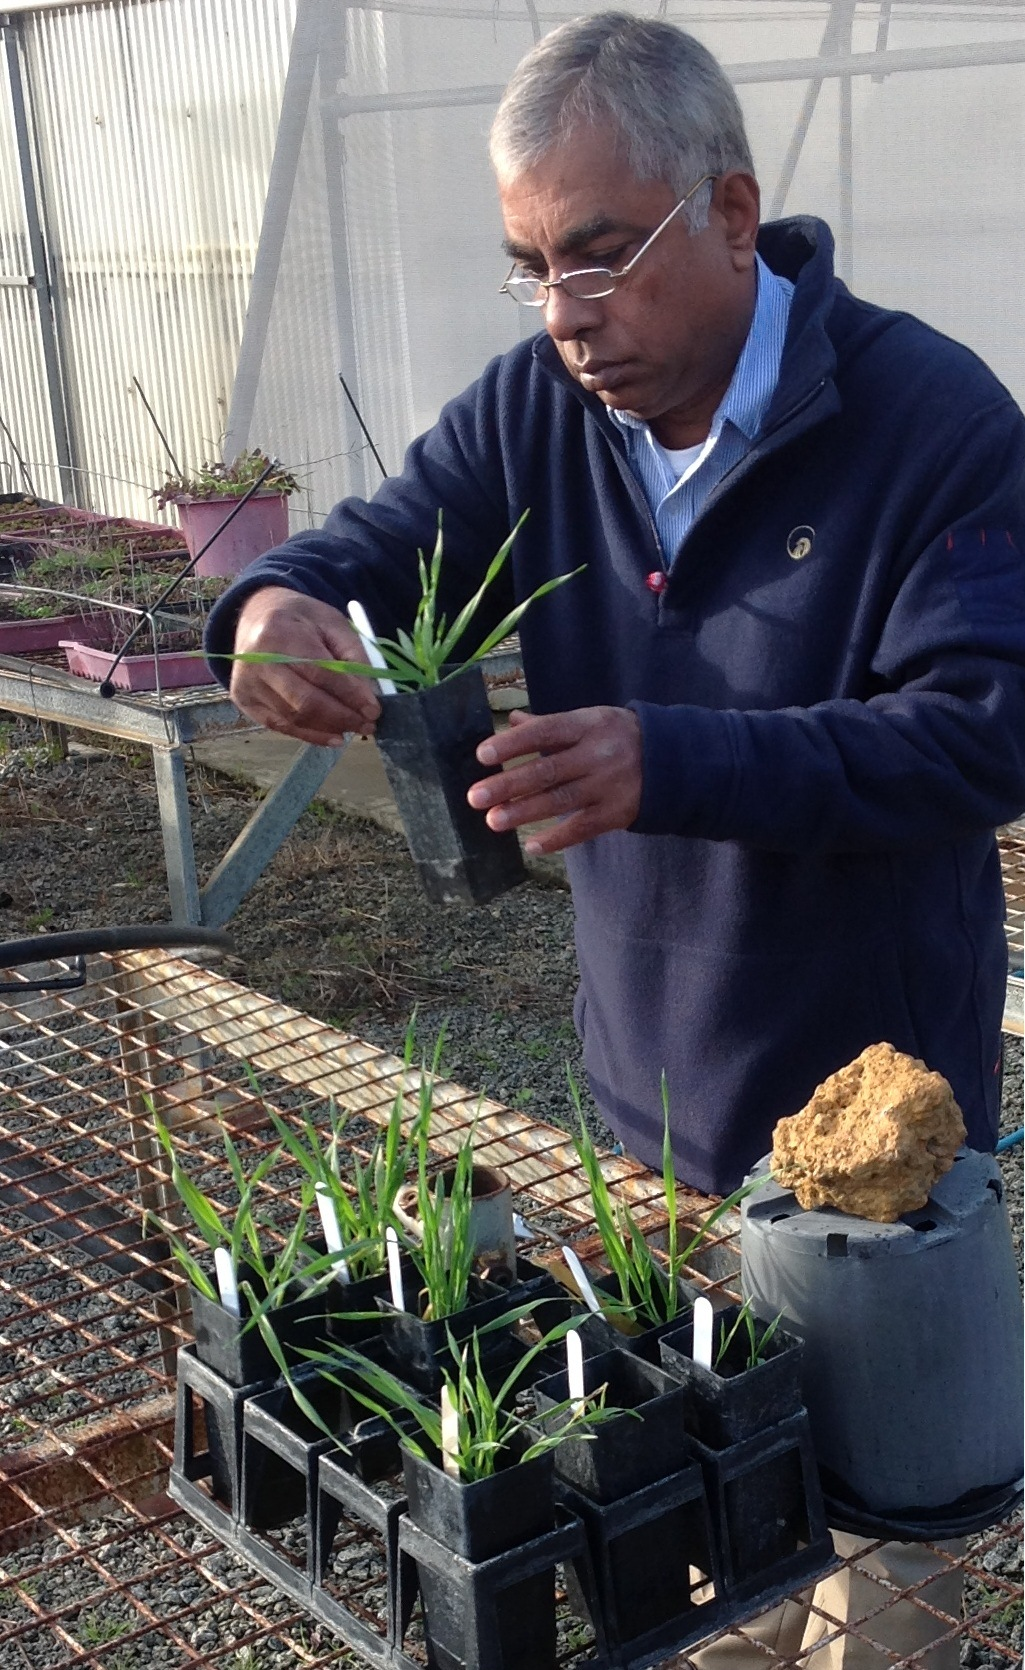 Dr Jayasena inspecting glasshouse plants for signs of disease. Photo by Jeremy Lemon, DAFWA.